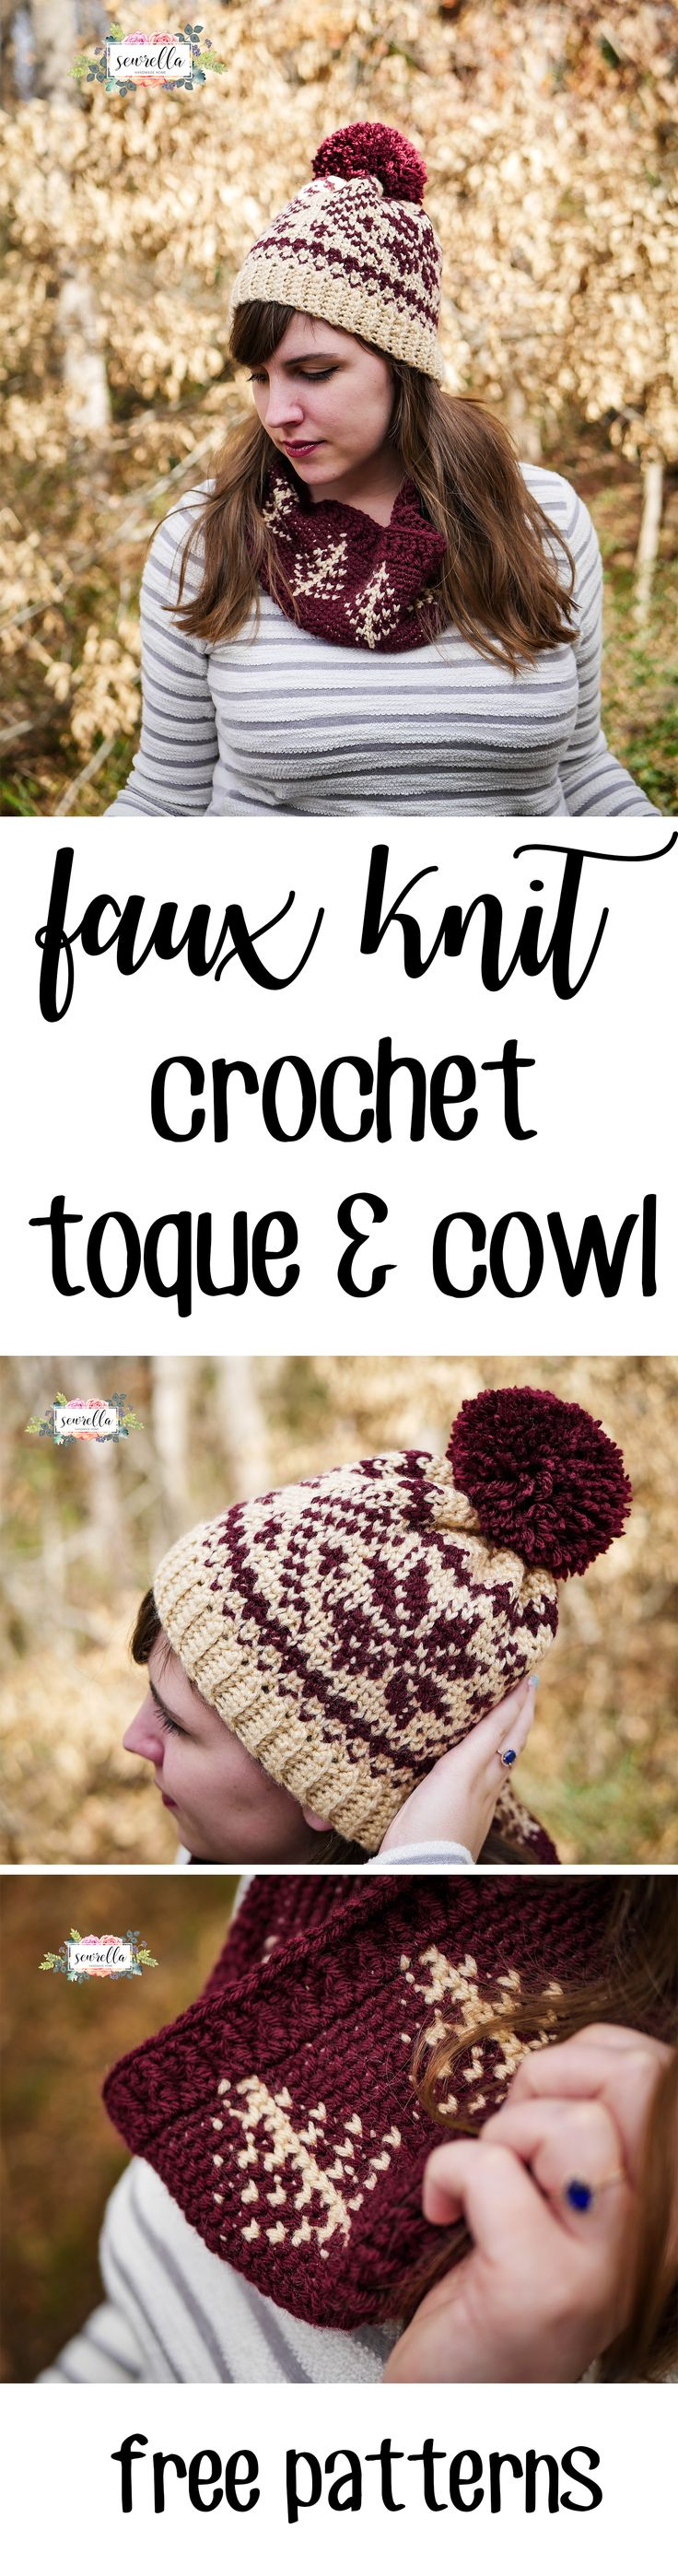 Faux Knit Fair Isle Crochet Toque Hat and Cowl Scarf Crochet Patterns are now on the blog! They use a basic center single crochet stitch and are oh so easy to make - even for beginner crocheters!   Free patterns from Sewrella